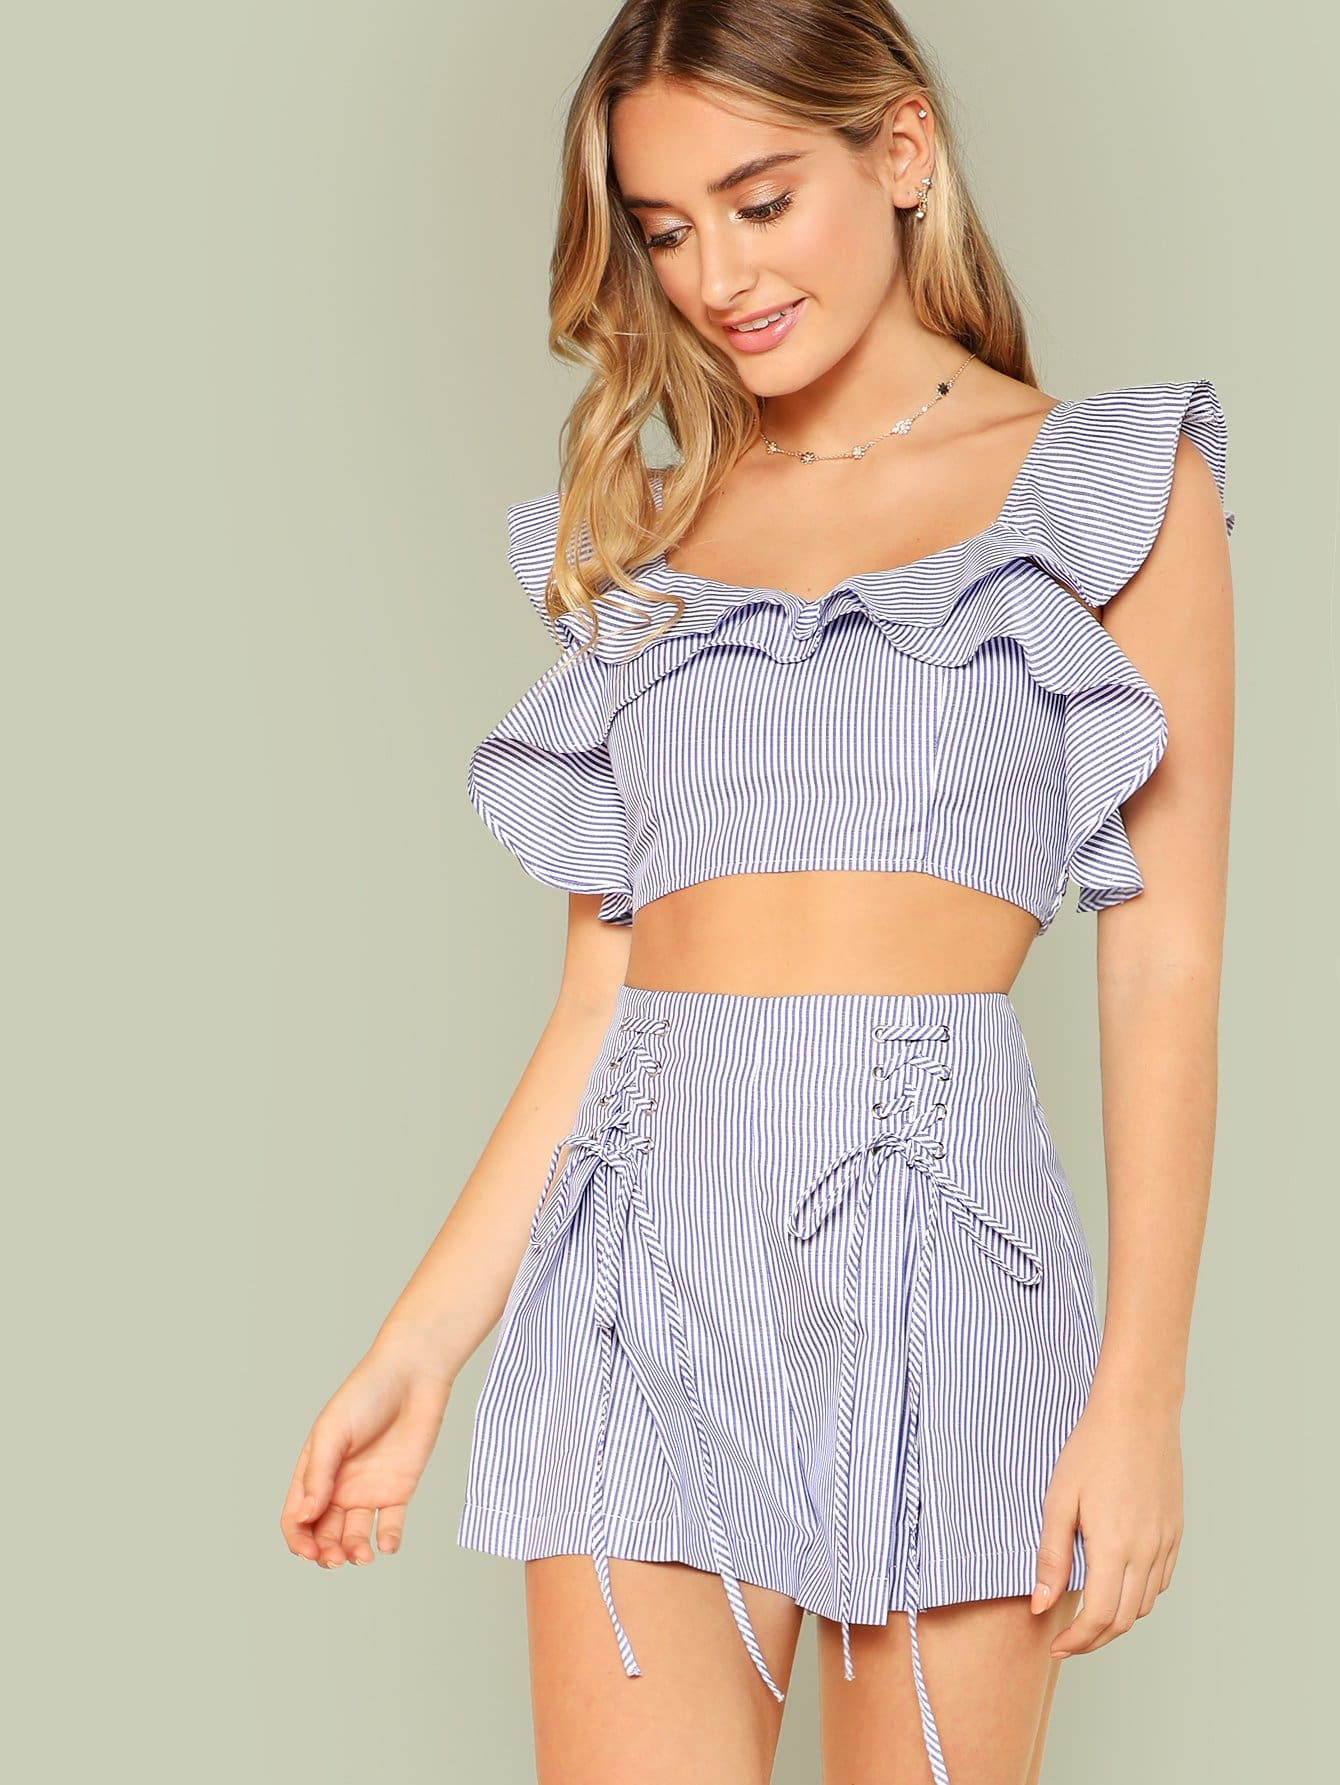 Ruffle Striped Crop Top & Lace Up Shorts Co-Ord jungle print crop tank top and pleated shorts co ord